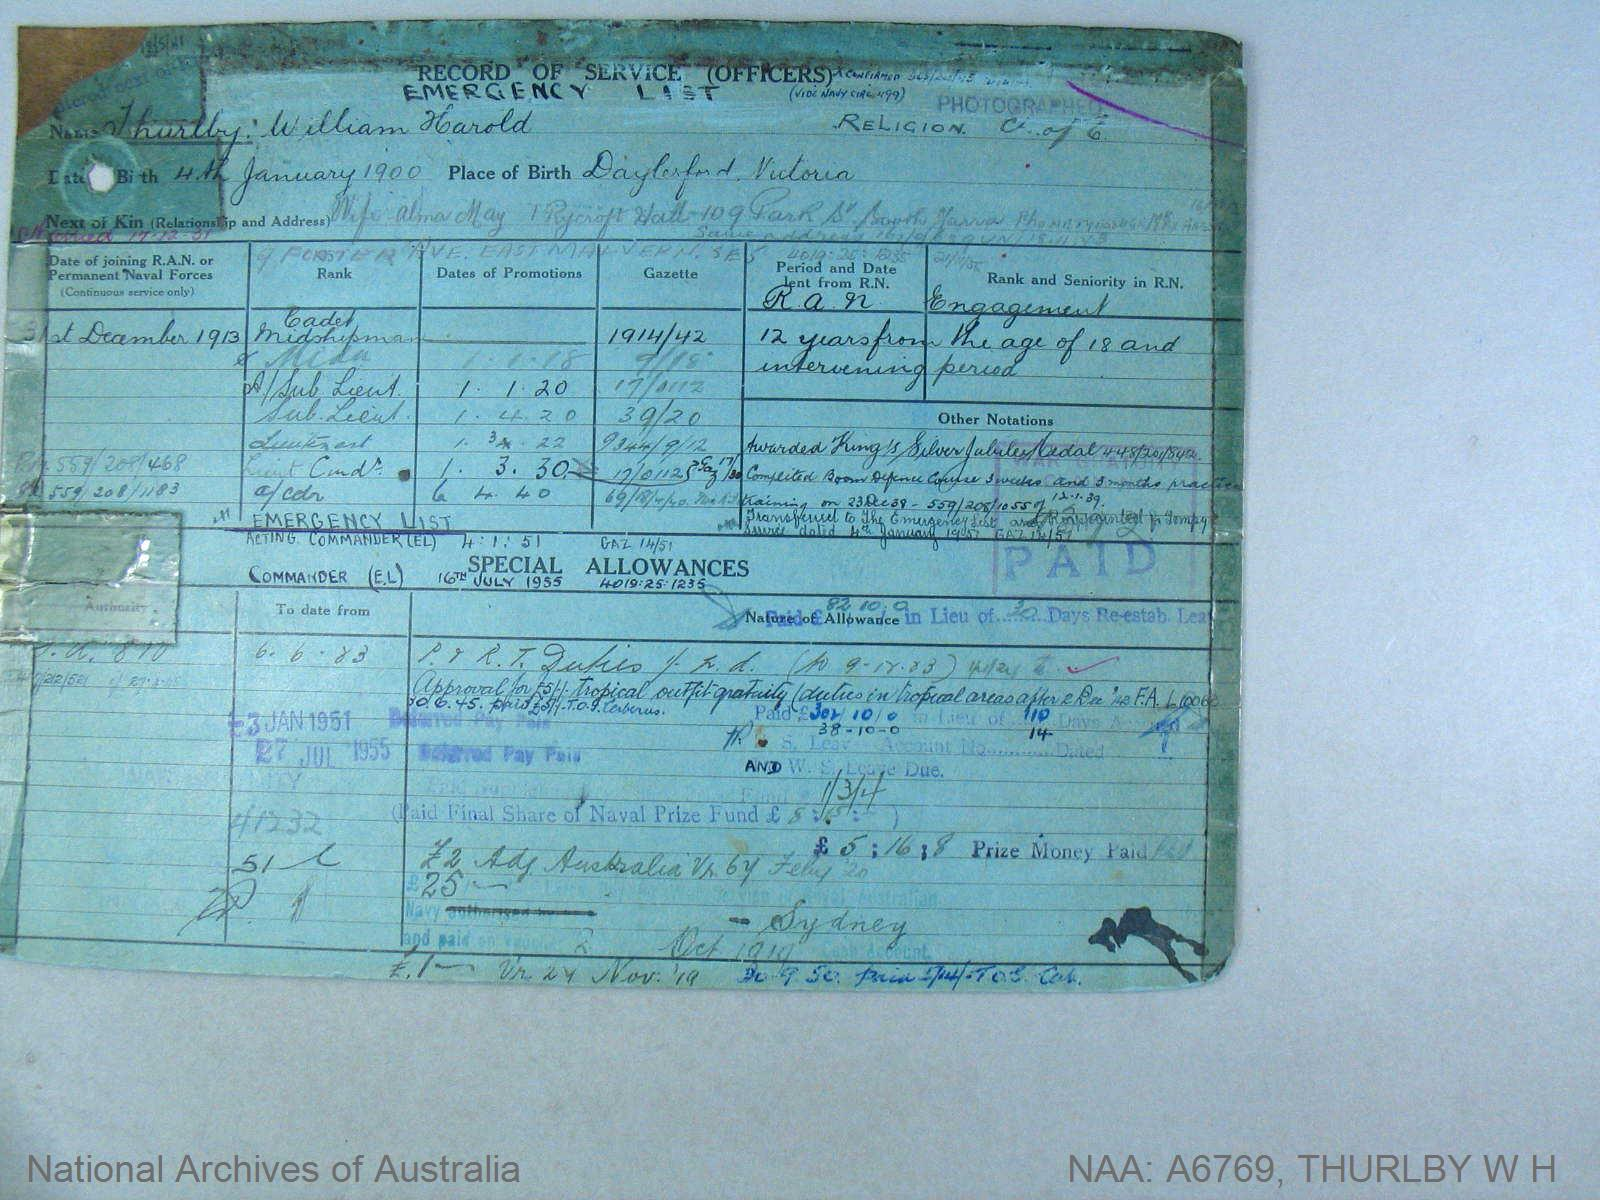 THURLBY WILLIAM HAROLD : Date of birth - 04 Jan 1900 : Place of birth - DAYLESFORD VIC : Place of enlistment - SYDNEY : Next of Kin - ALMA